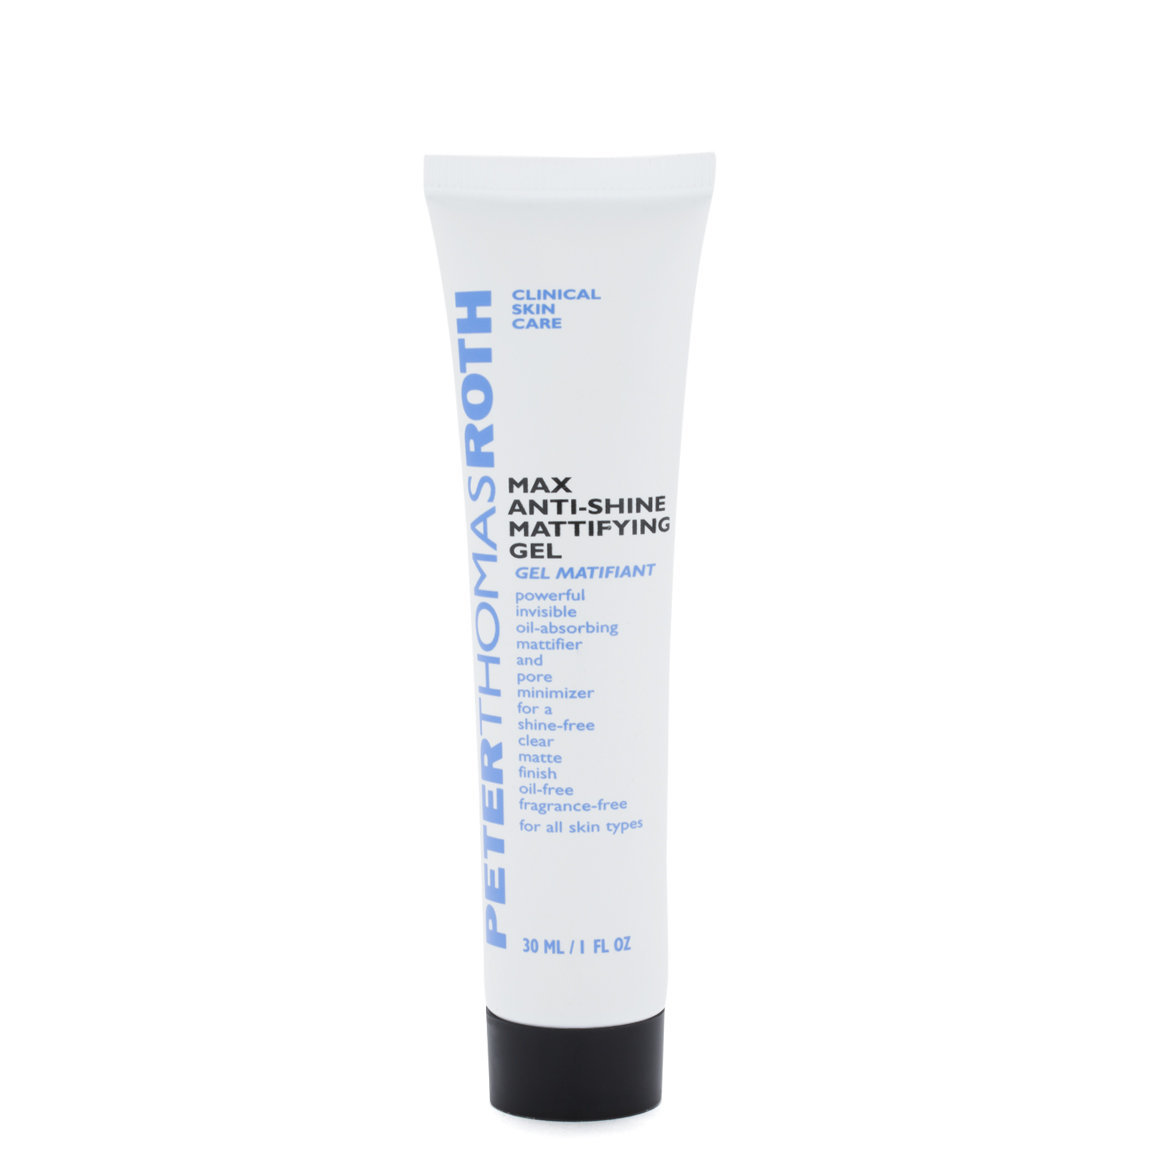 Peter Thomas Roth Max Anti-Shine Mattifying Gel product swatch.